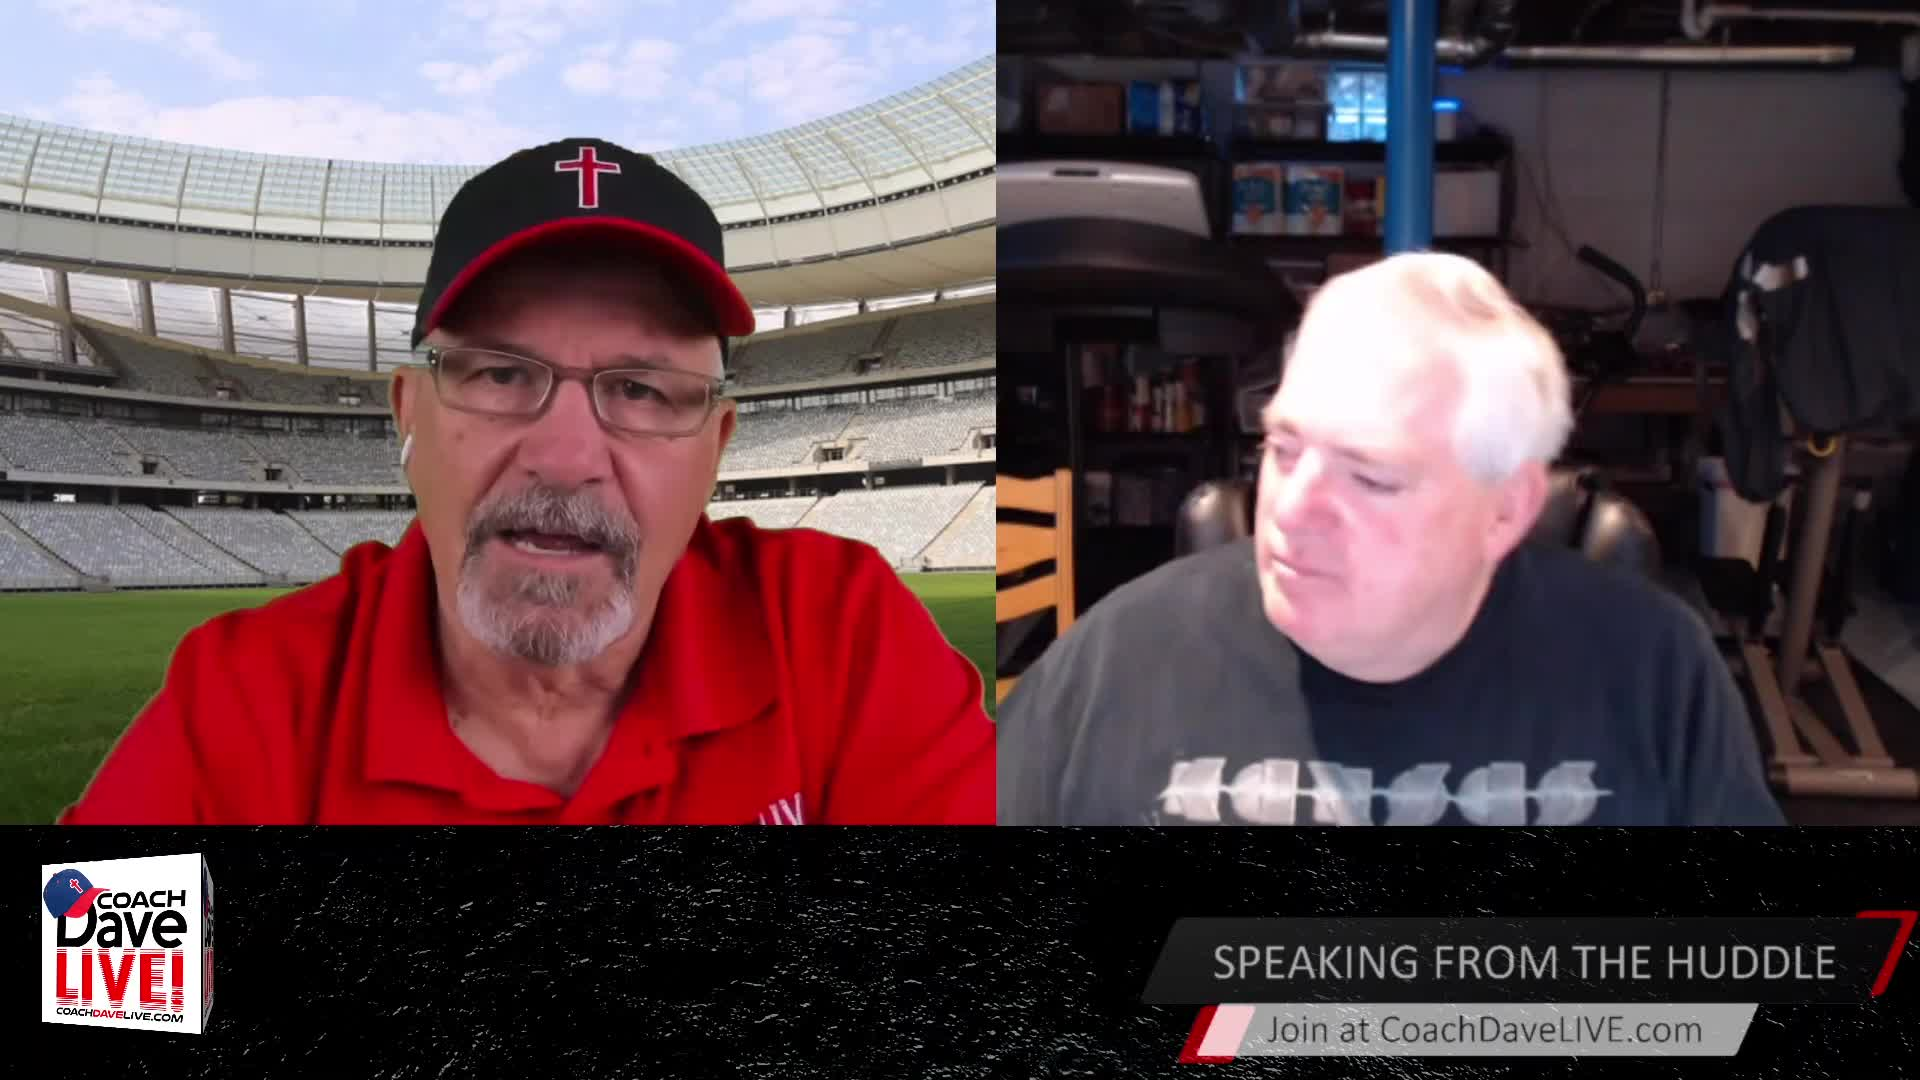 Coach Dave LIVE | 4-21-2021 | SOMETHING'S COMING!